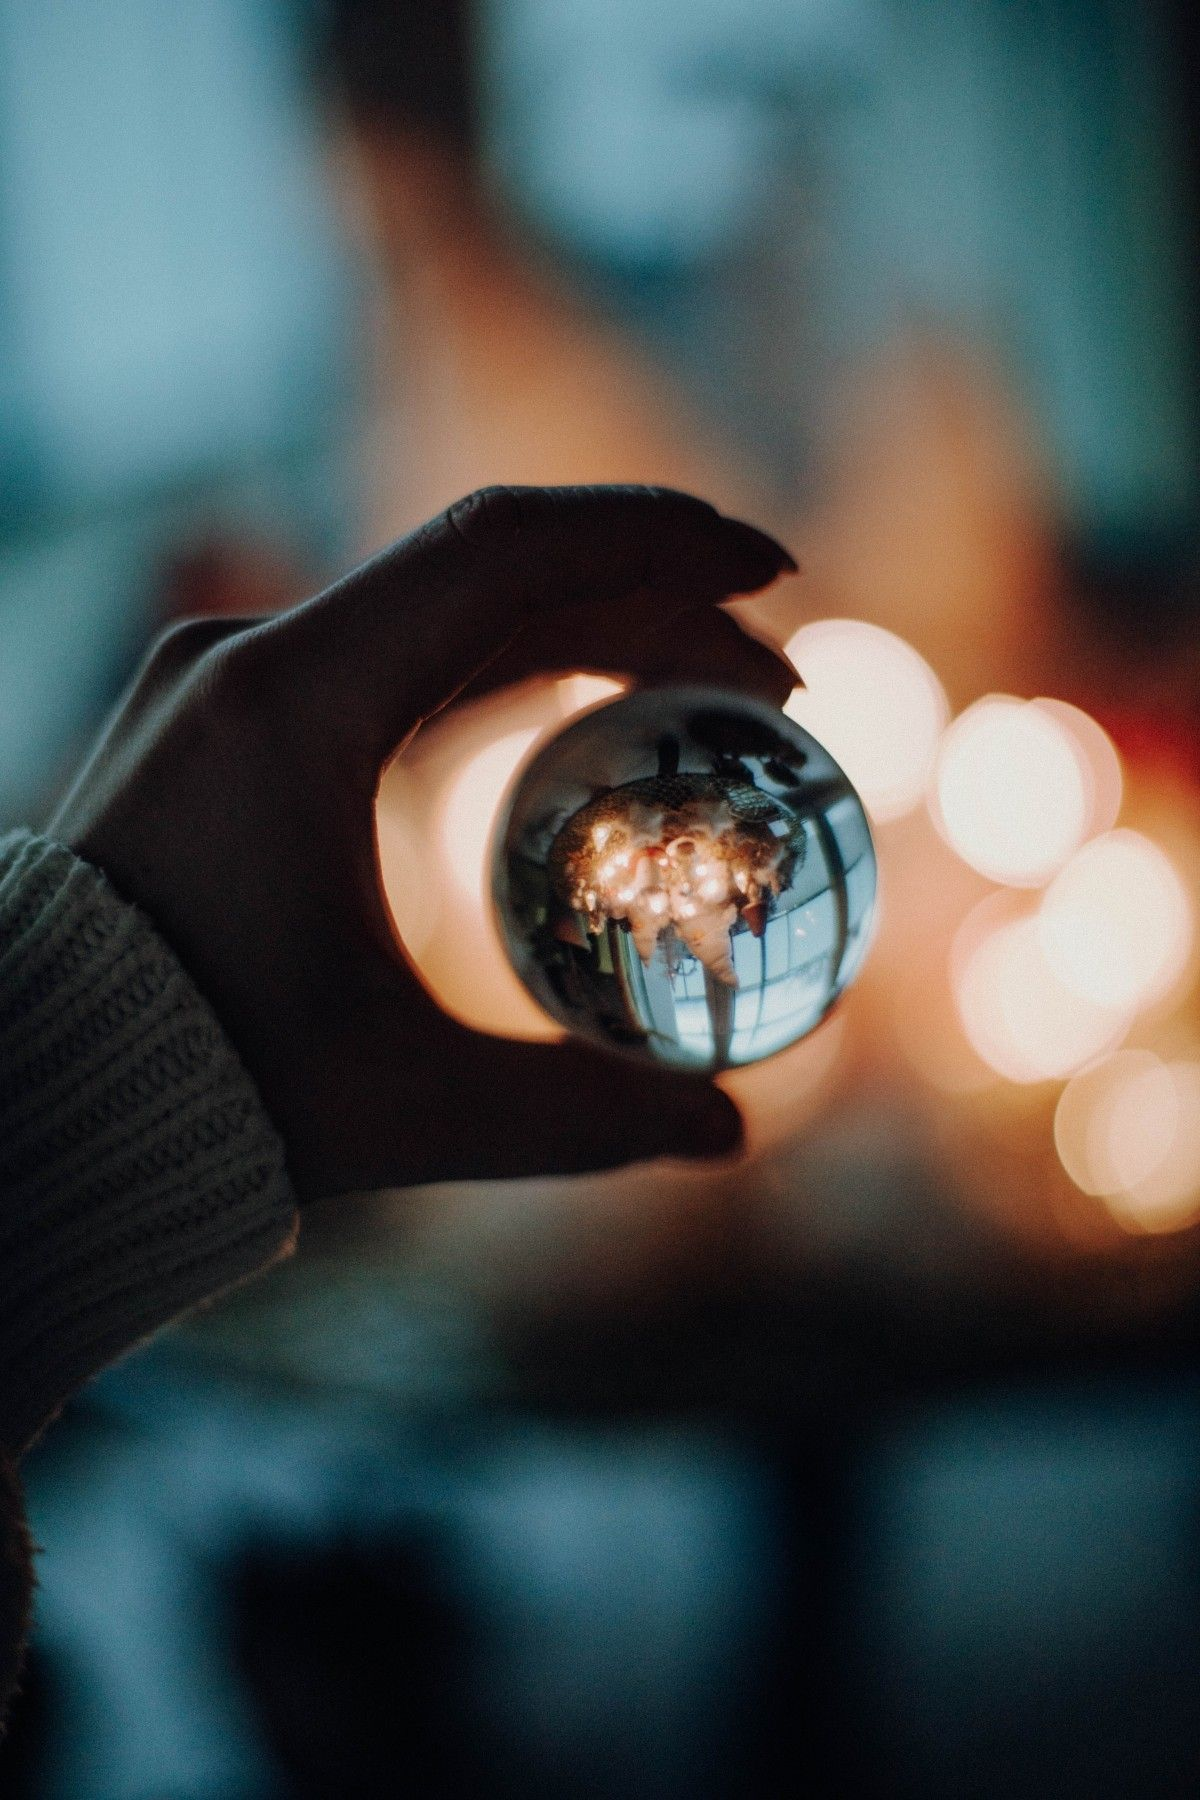 A Crystal Ball Will Definitely Spice Up Your Photography You Will Receive An Eff Photography Ideas At Home Stock Photography Ideas Photojournalism Photography